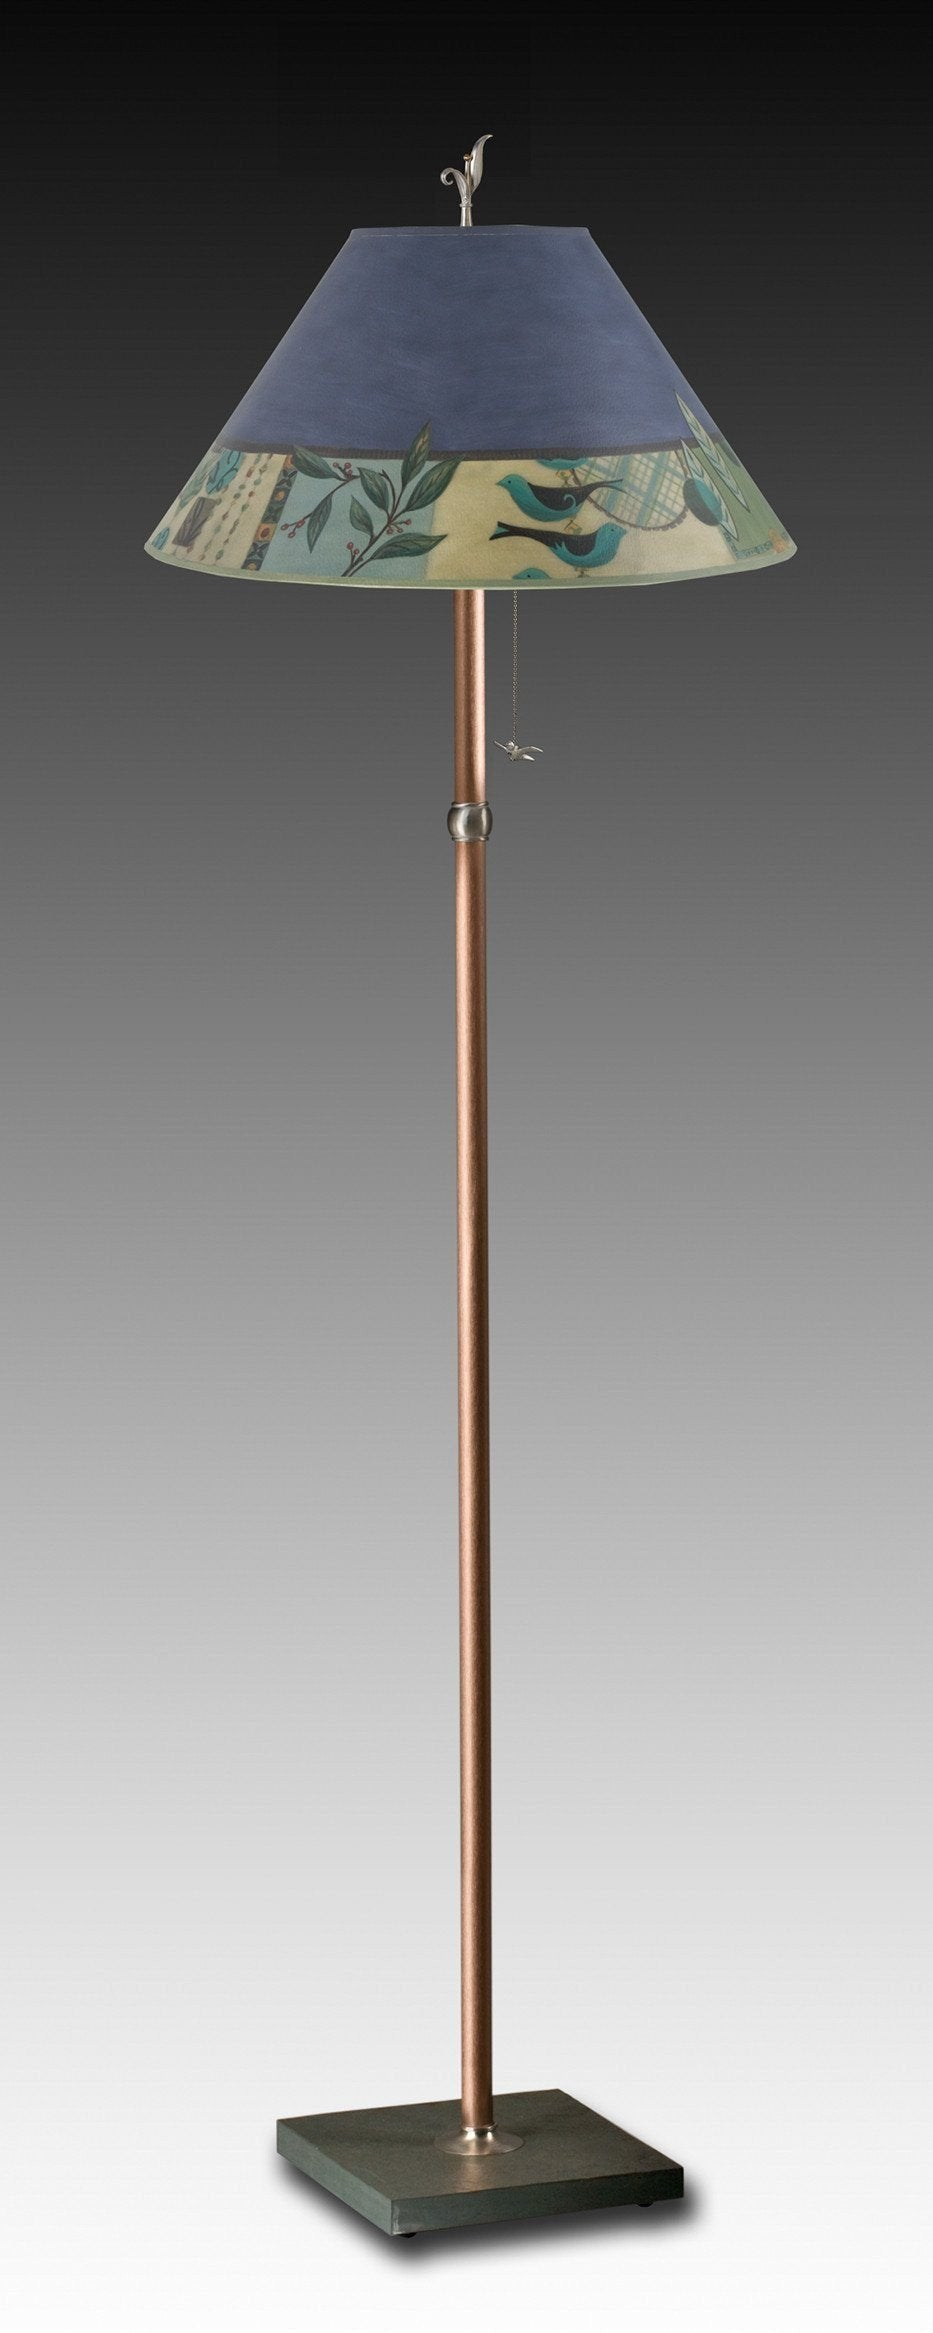 Copper Floor Lamp on Vermont Slate Base with Large Conical Shade in New Capri Periwinkle